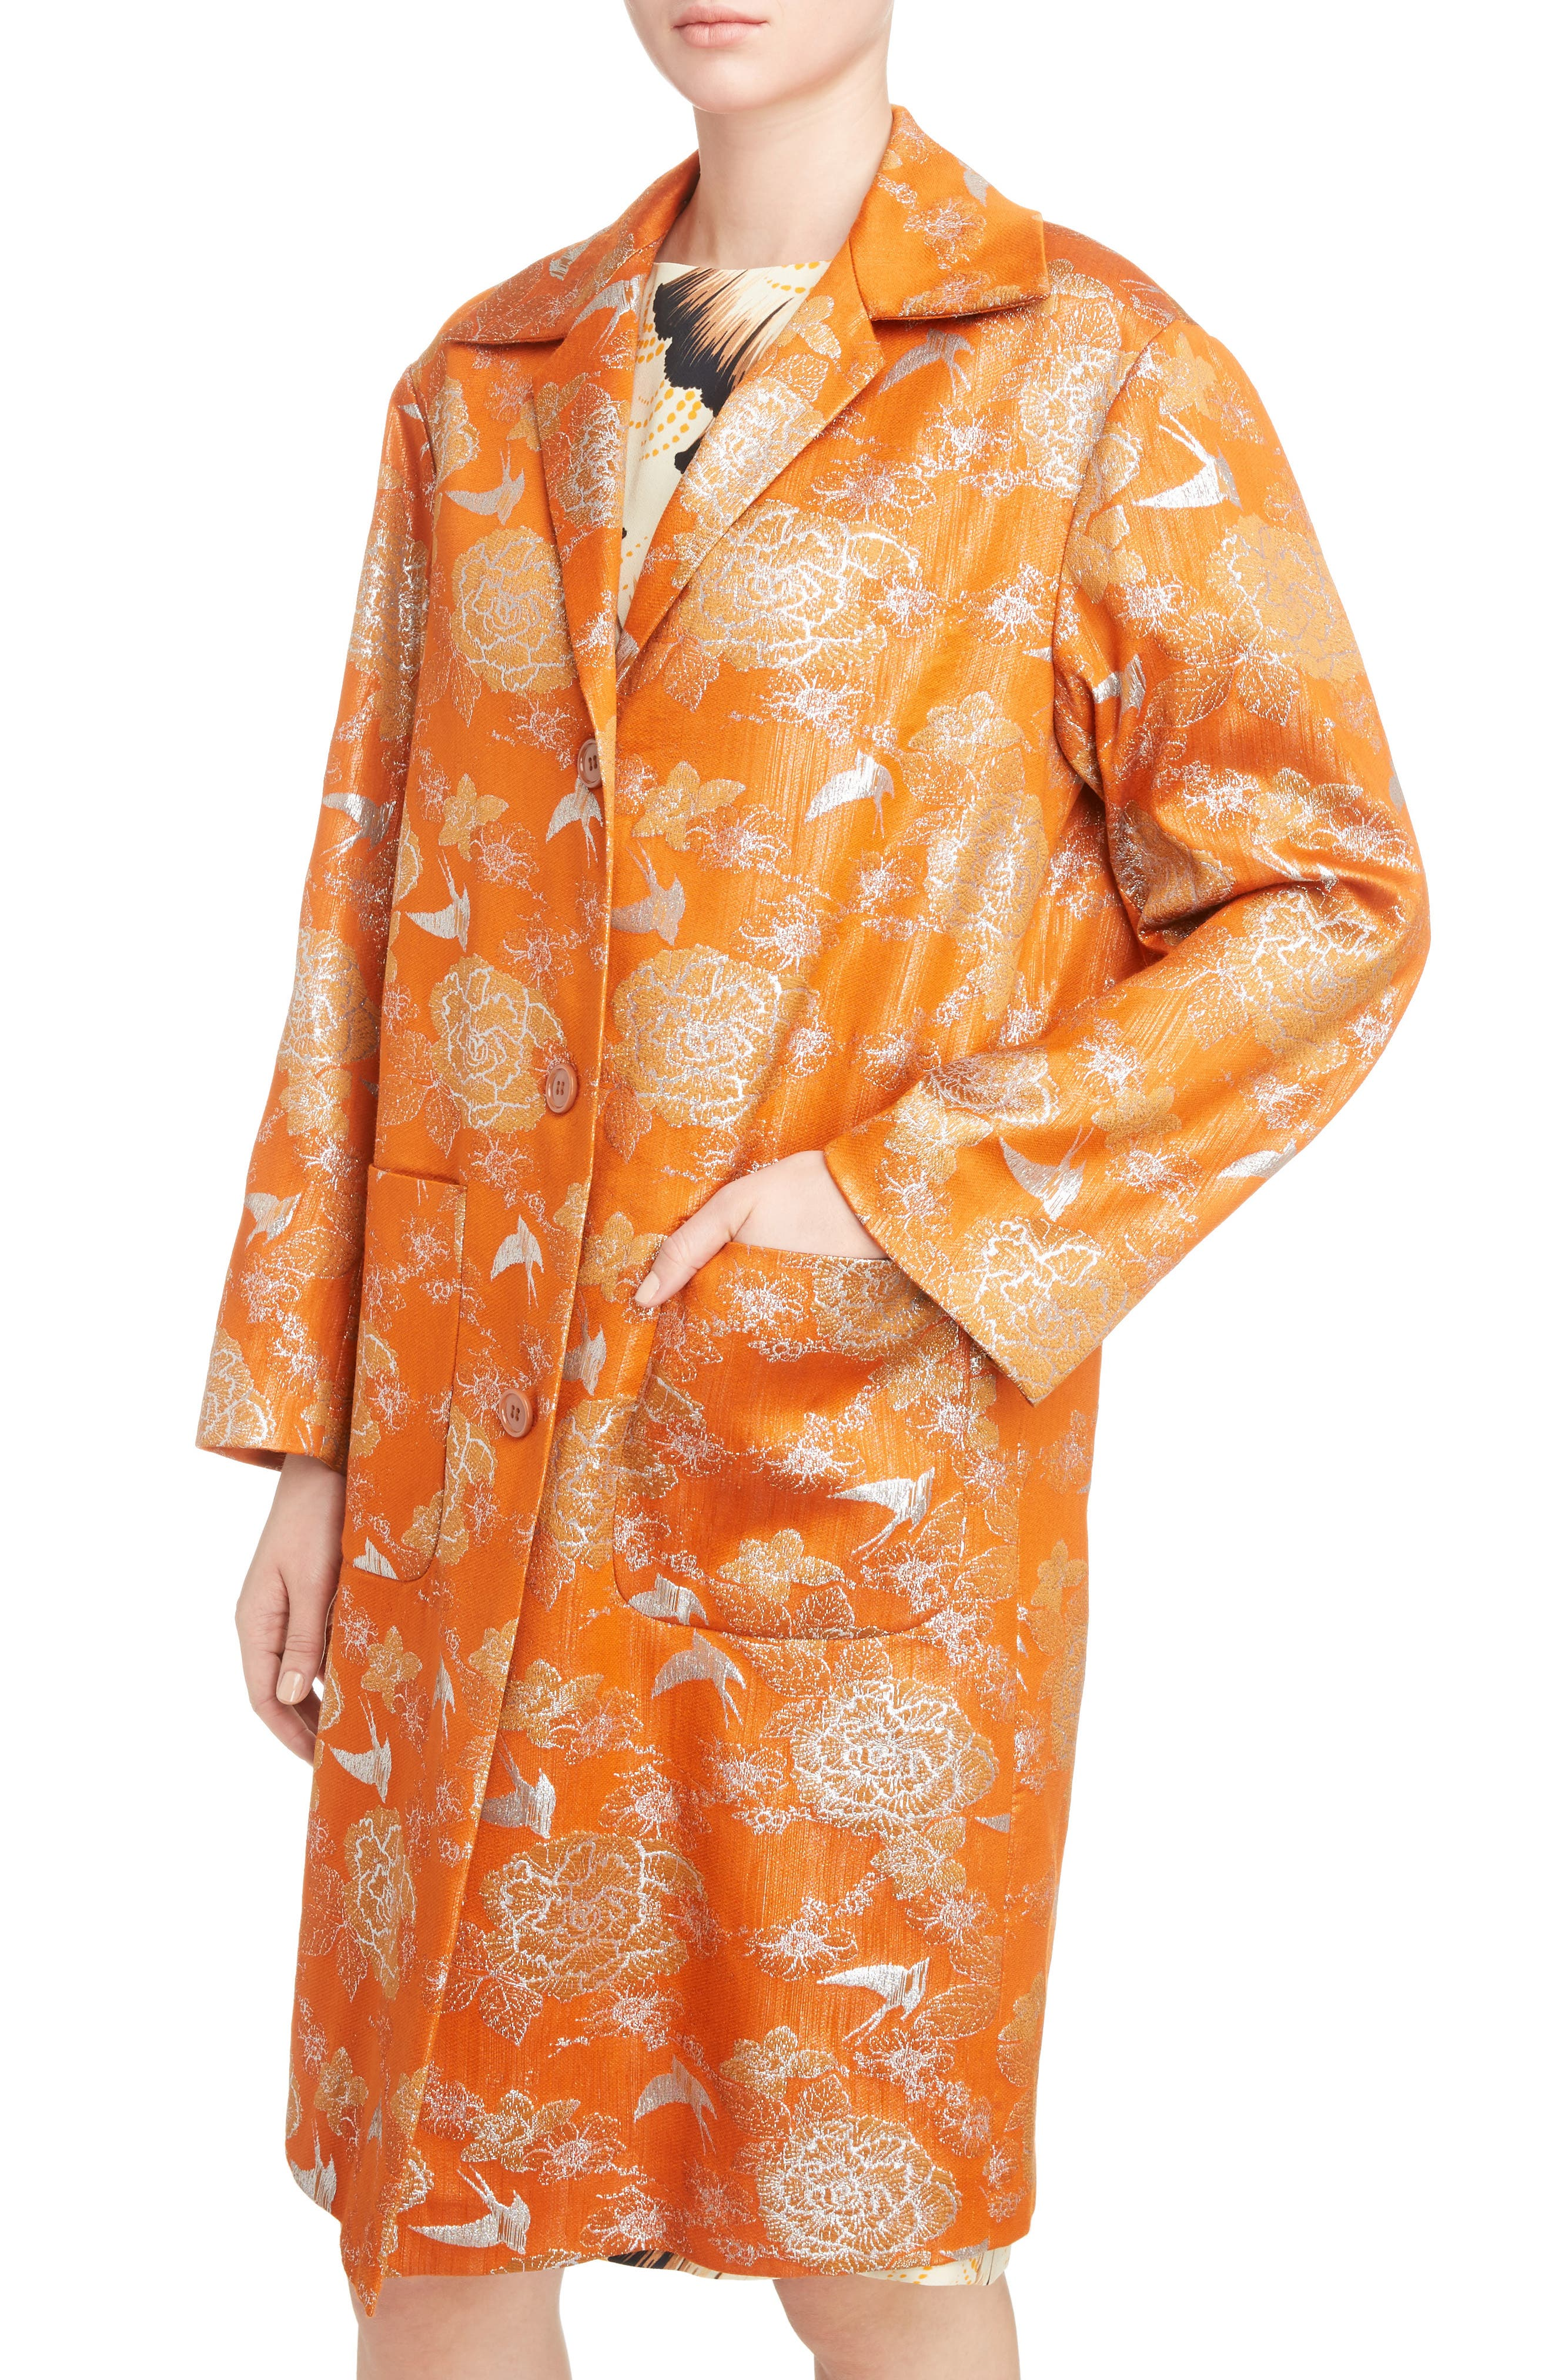 Silver Bird Jacquard Coat,                             Alternate thumbnail 4, color,                             800